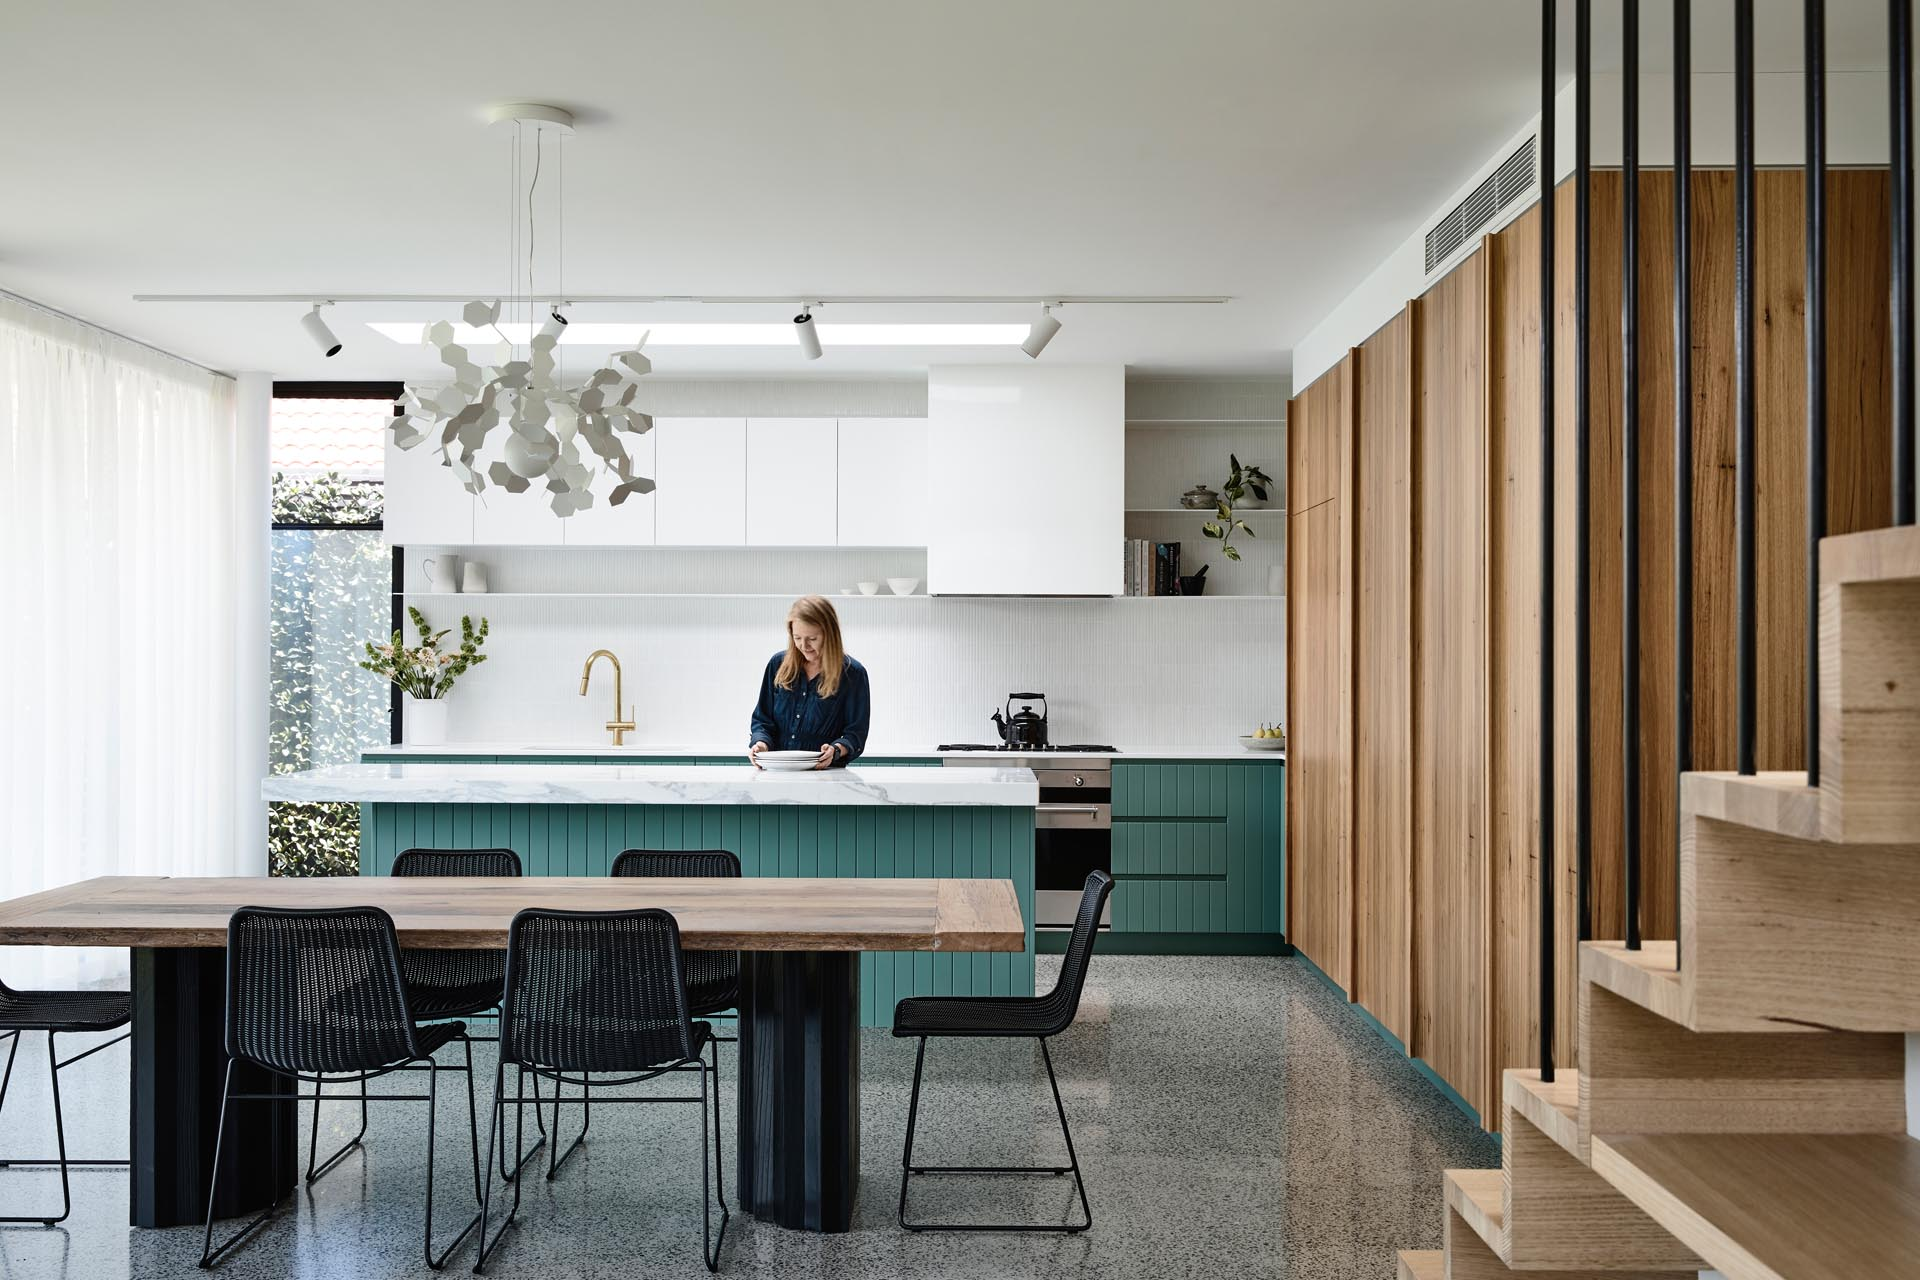 A modern interior with a dining area that has a large wood table with a black base that matches the black chairs, while in the kitchen, green cabinets add a colorful accent to the white countertops and upper cabinets.